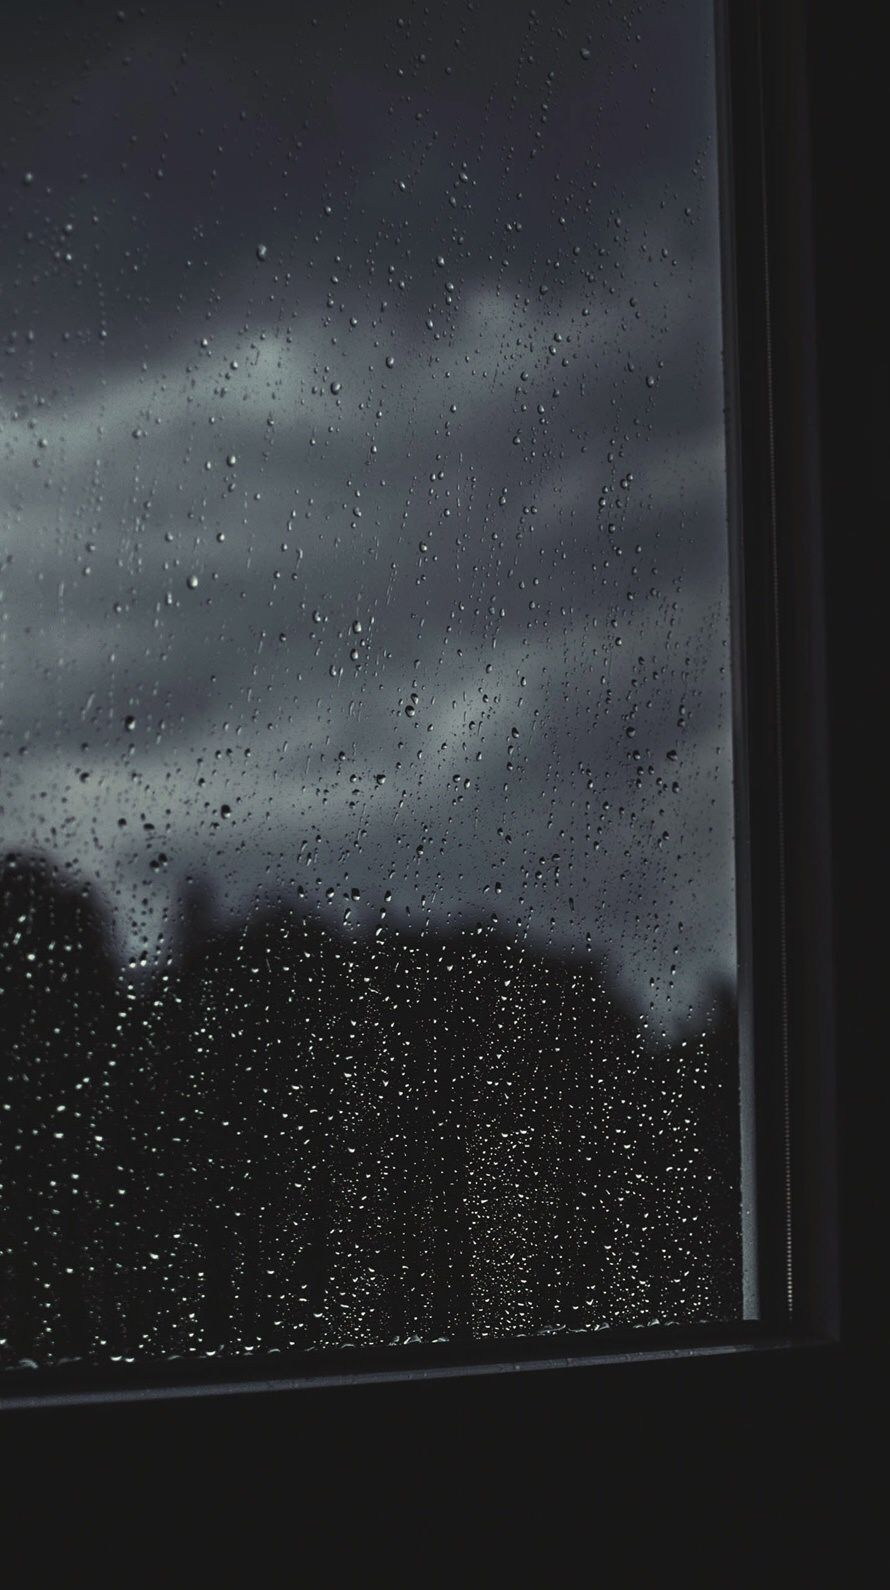 Rain Aesthetic Tumblr Wallpapers   Top Rain Aesthetic Tumblr 890x1590